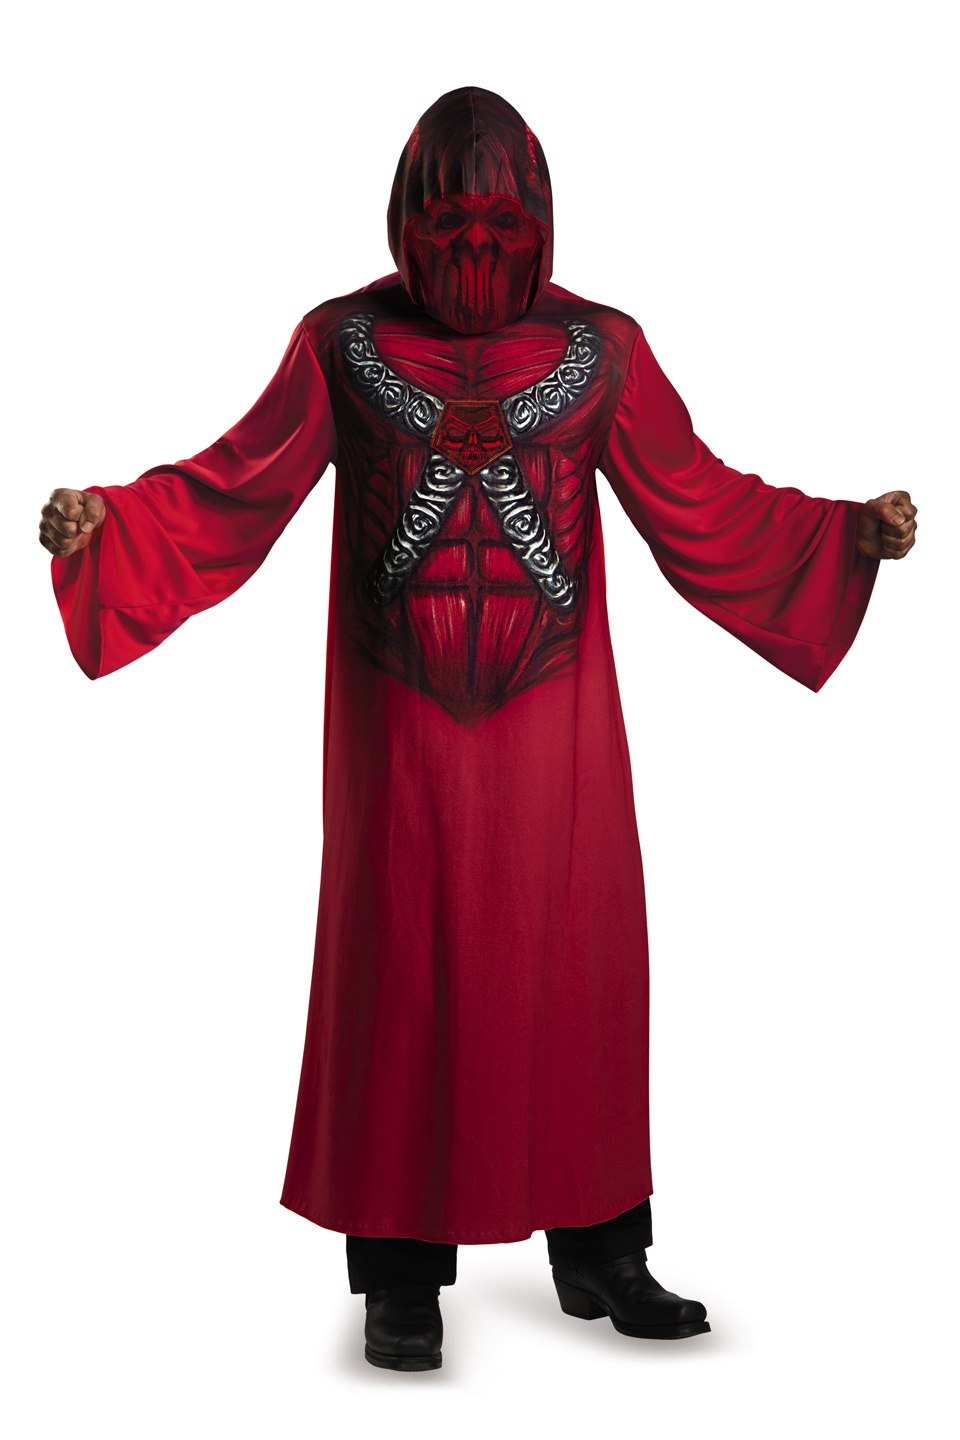 Home gt gt devil costume gt gt hooded devil scary adult costume